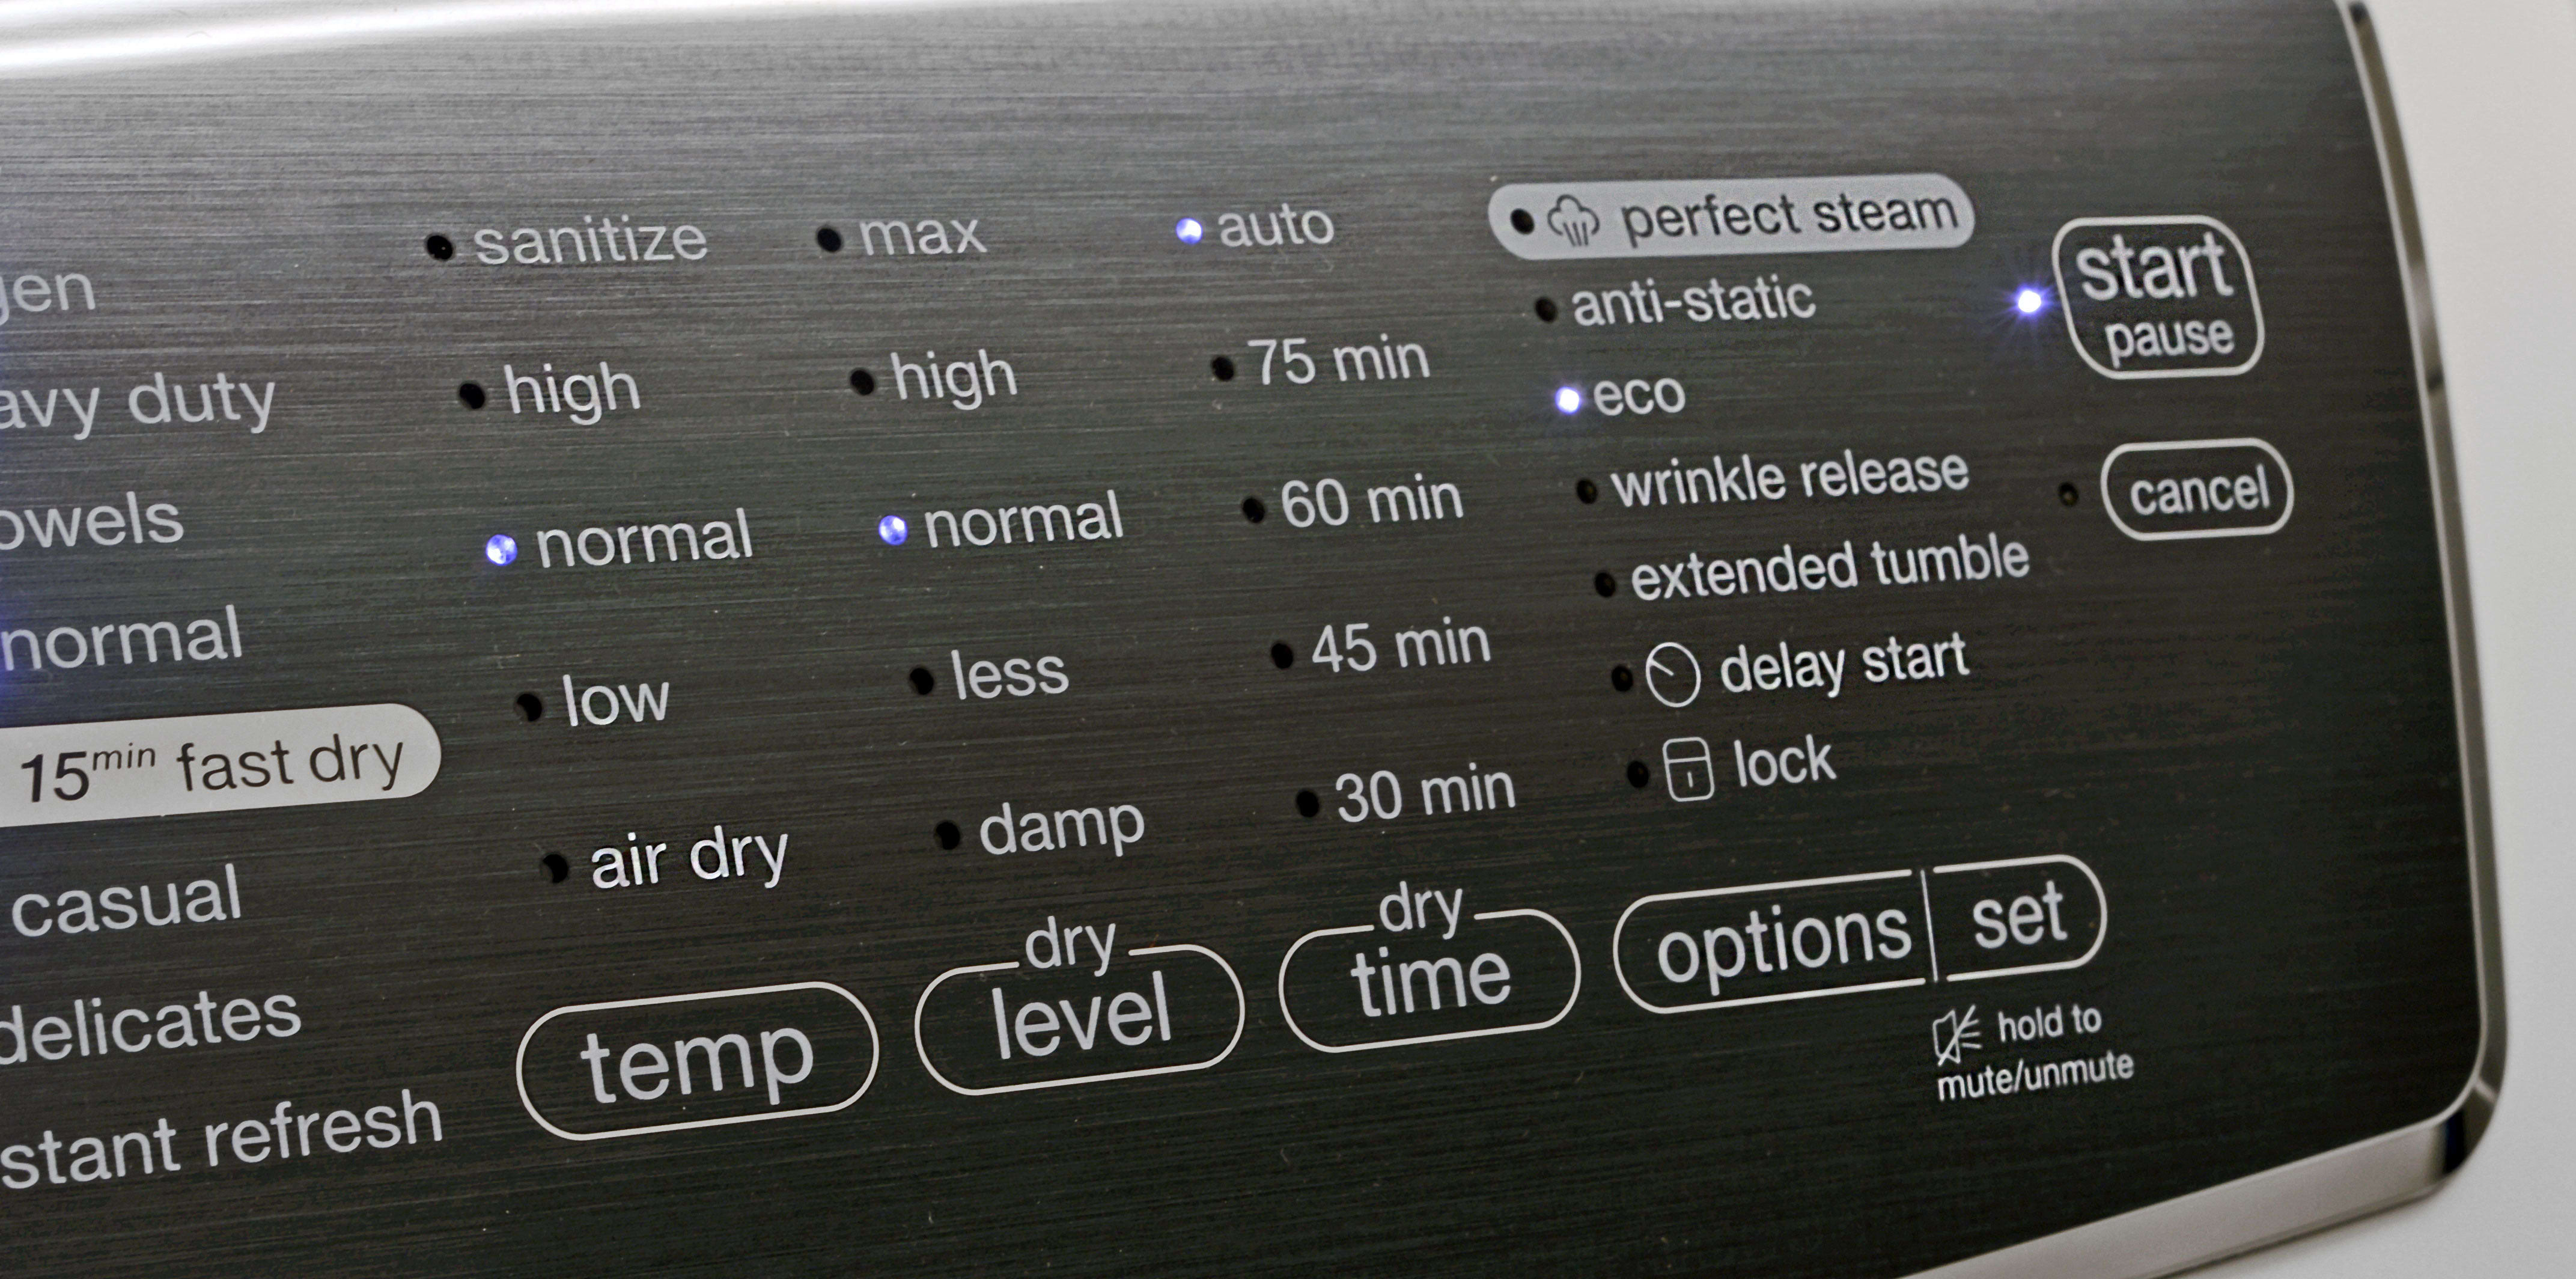 The Electrolux EFME617SIW's console looks great, but one-directional scrolling makes for a cumbersome interface.